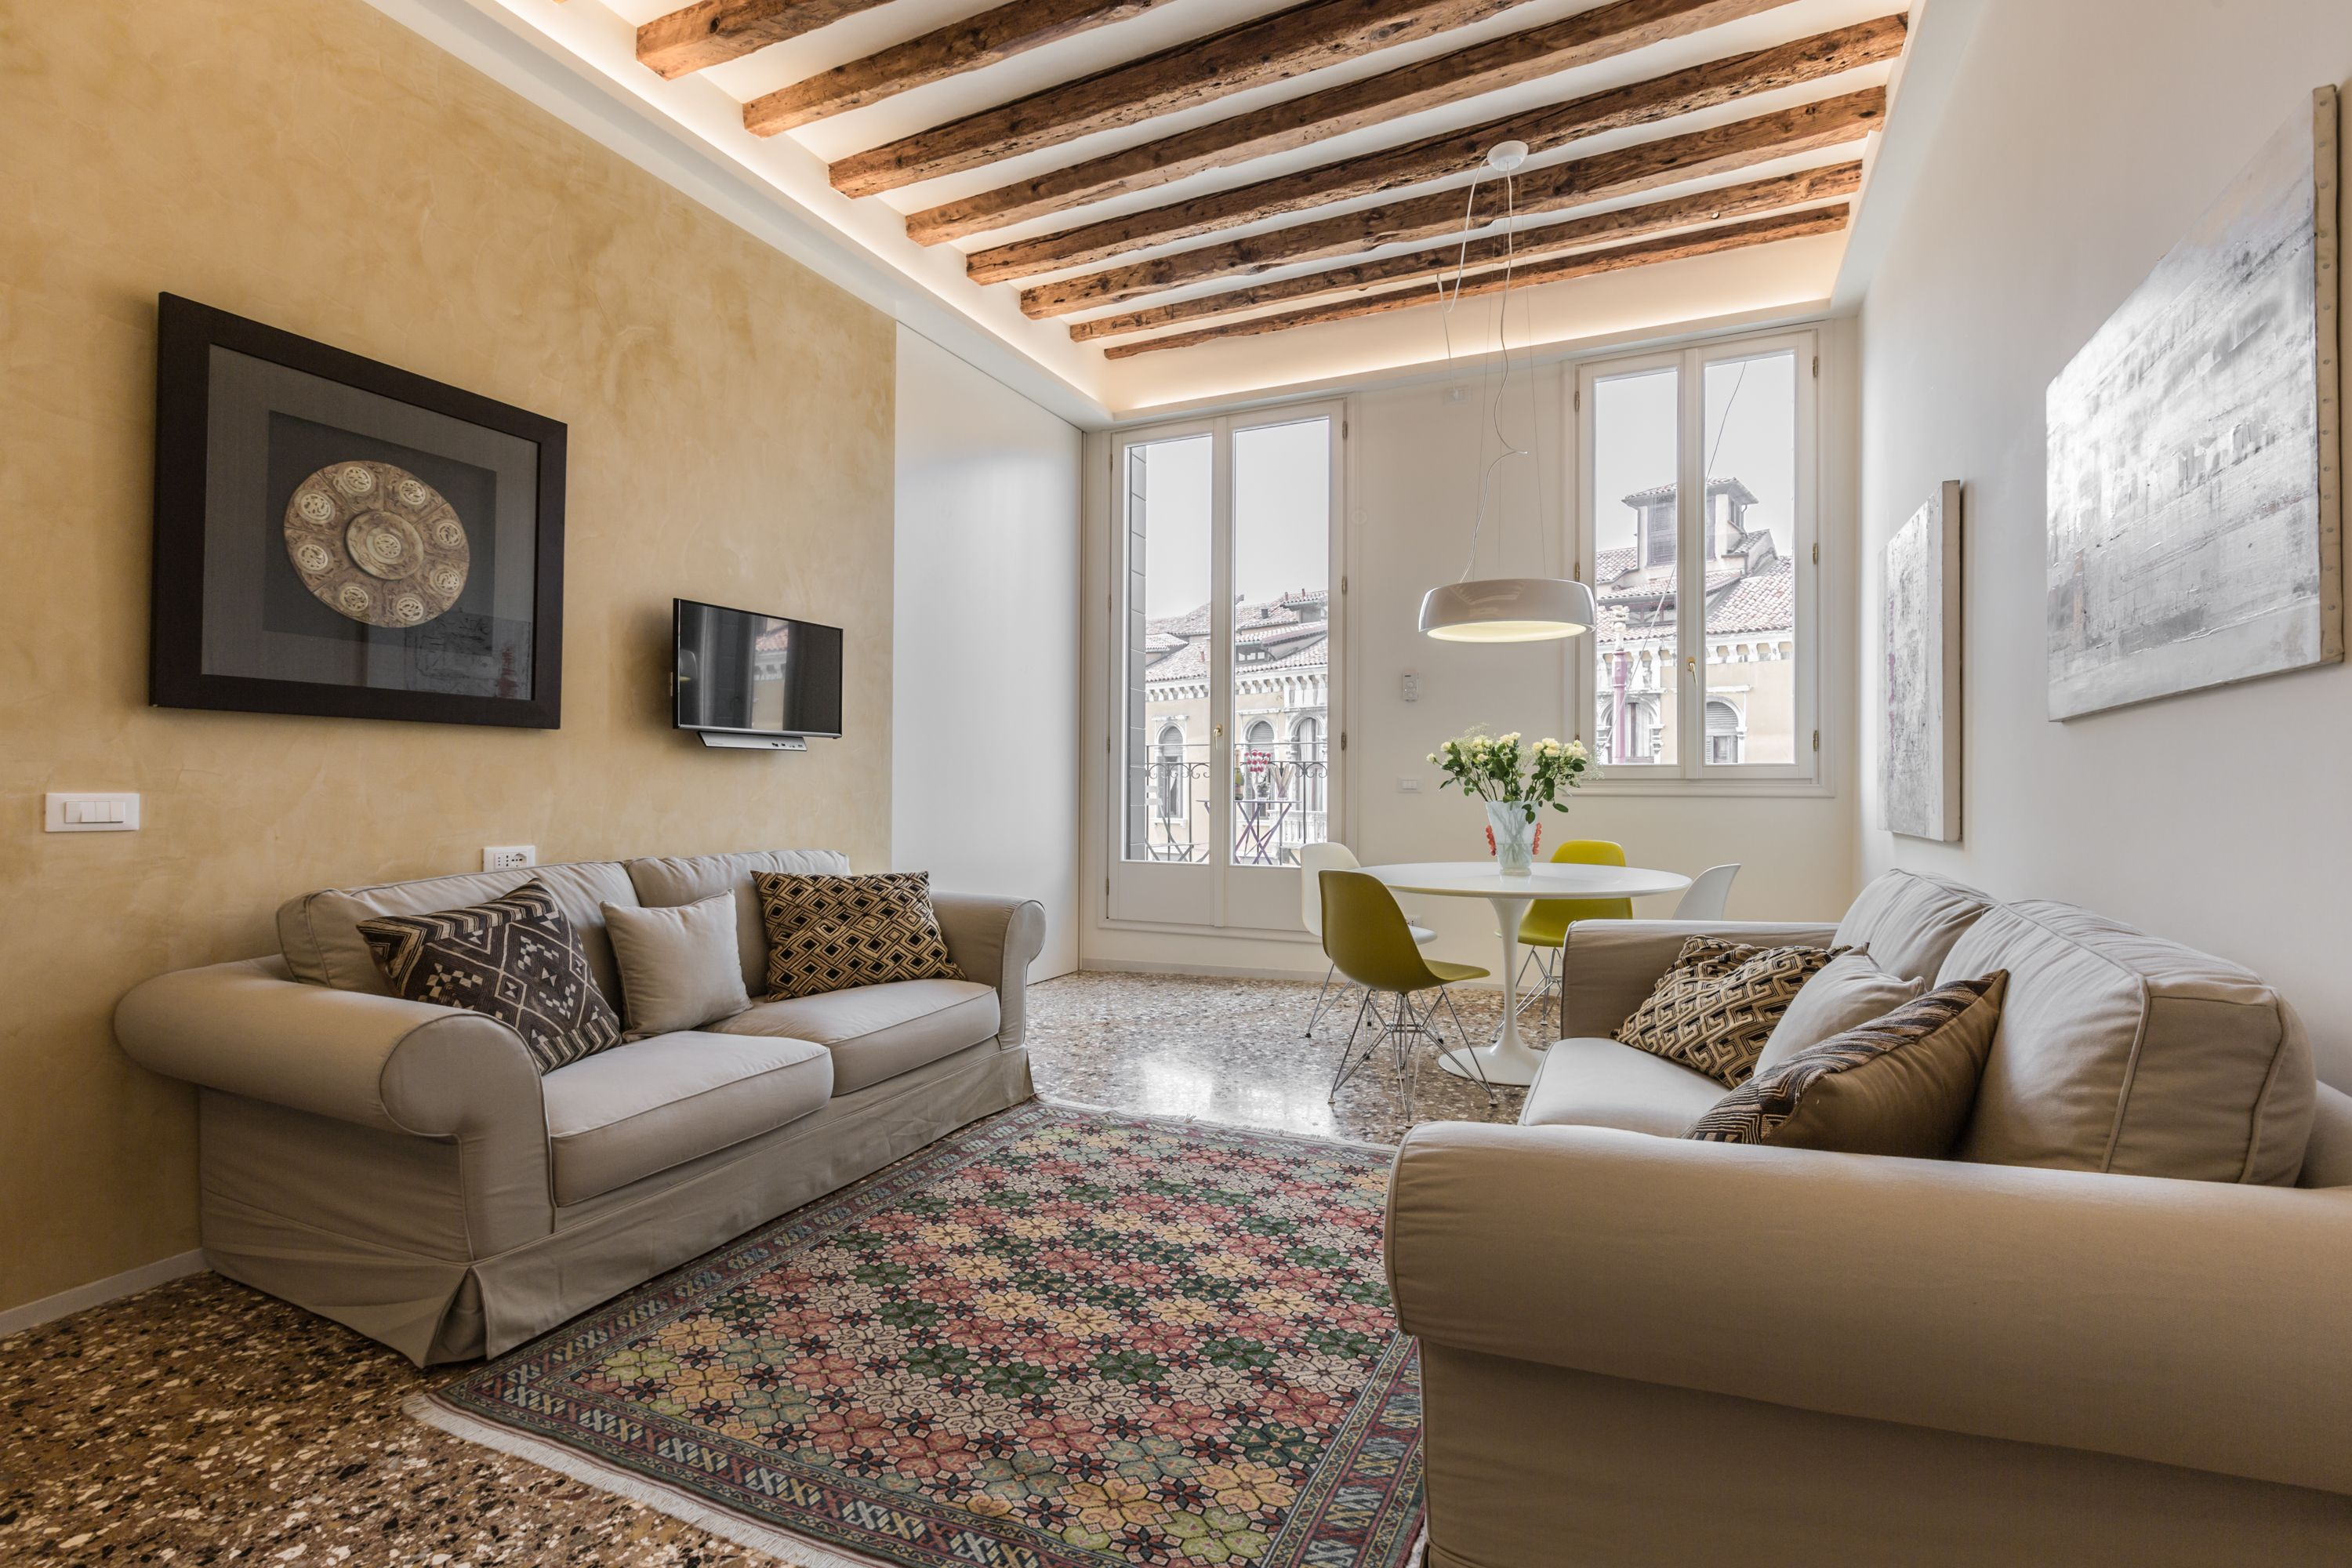 comfortable sofas, terrazzo Veneziano flooring, antique wooden beamed ceiling, plenty of natural light